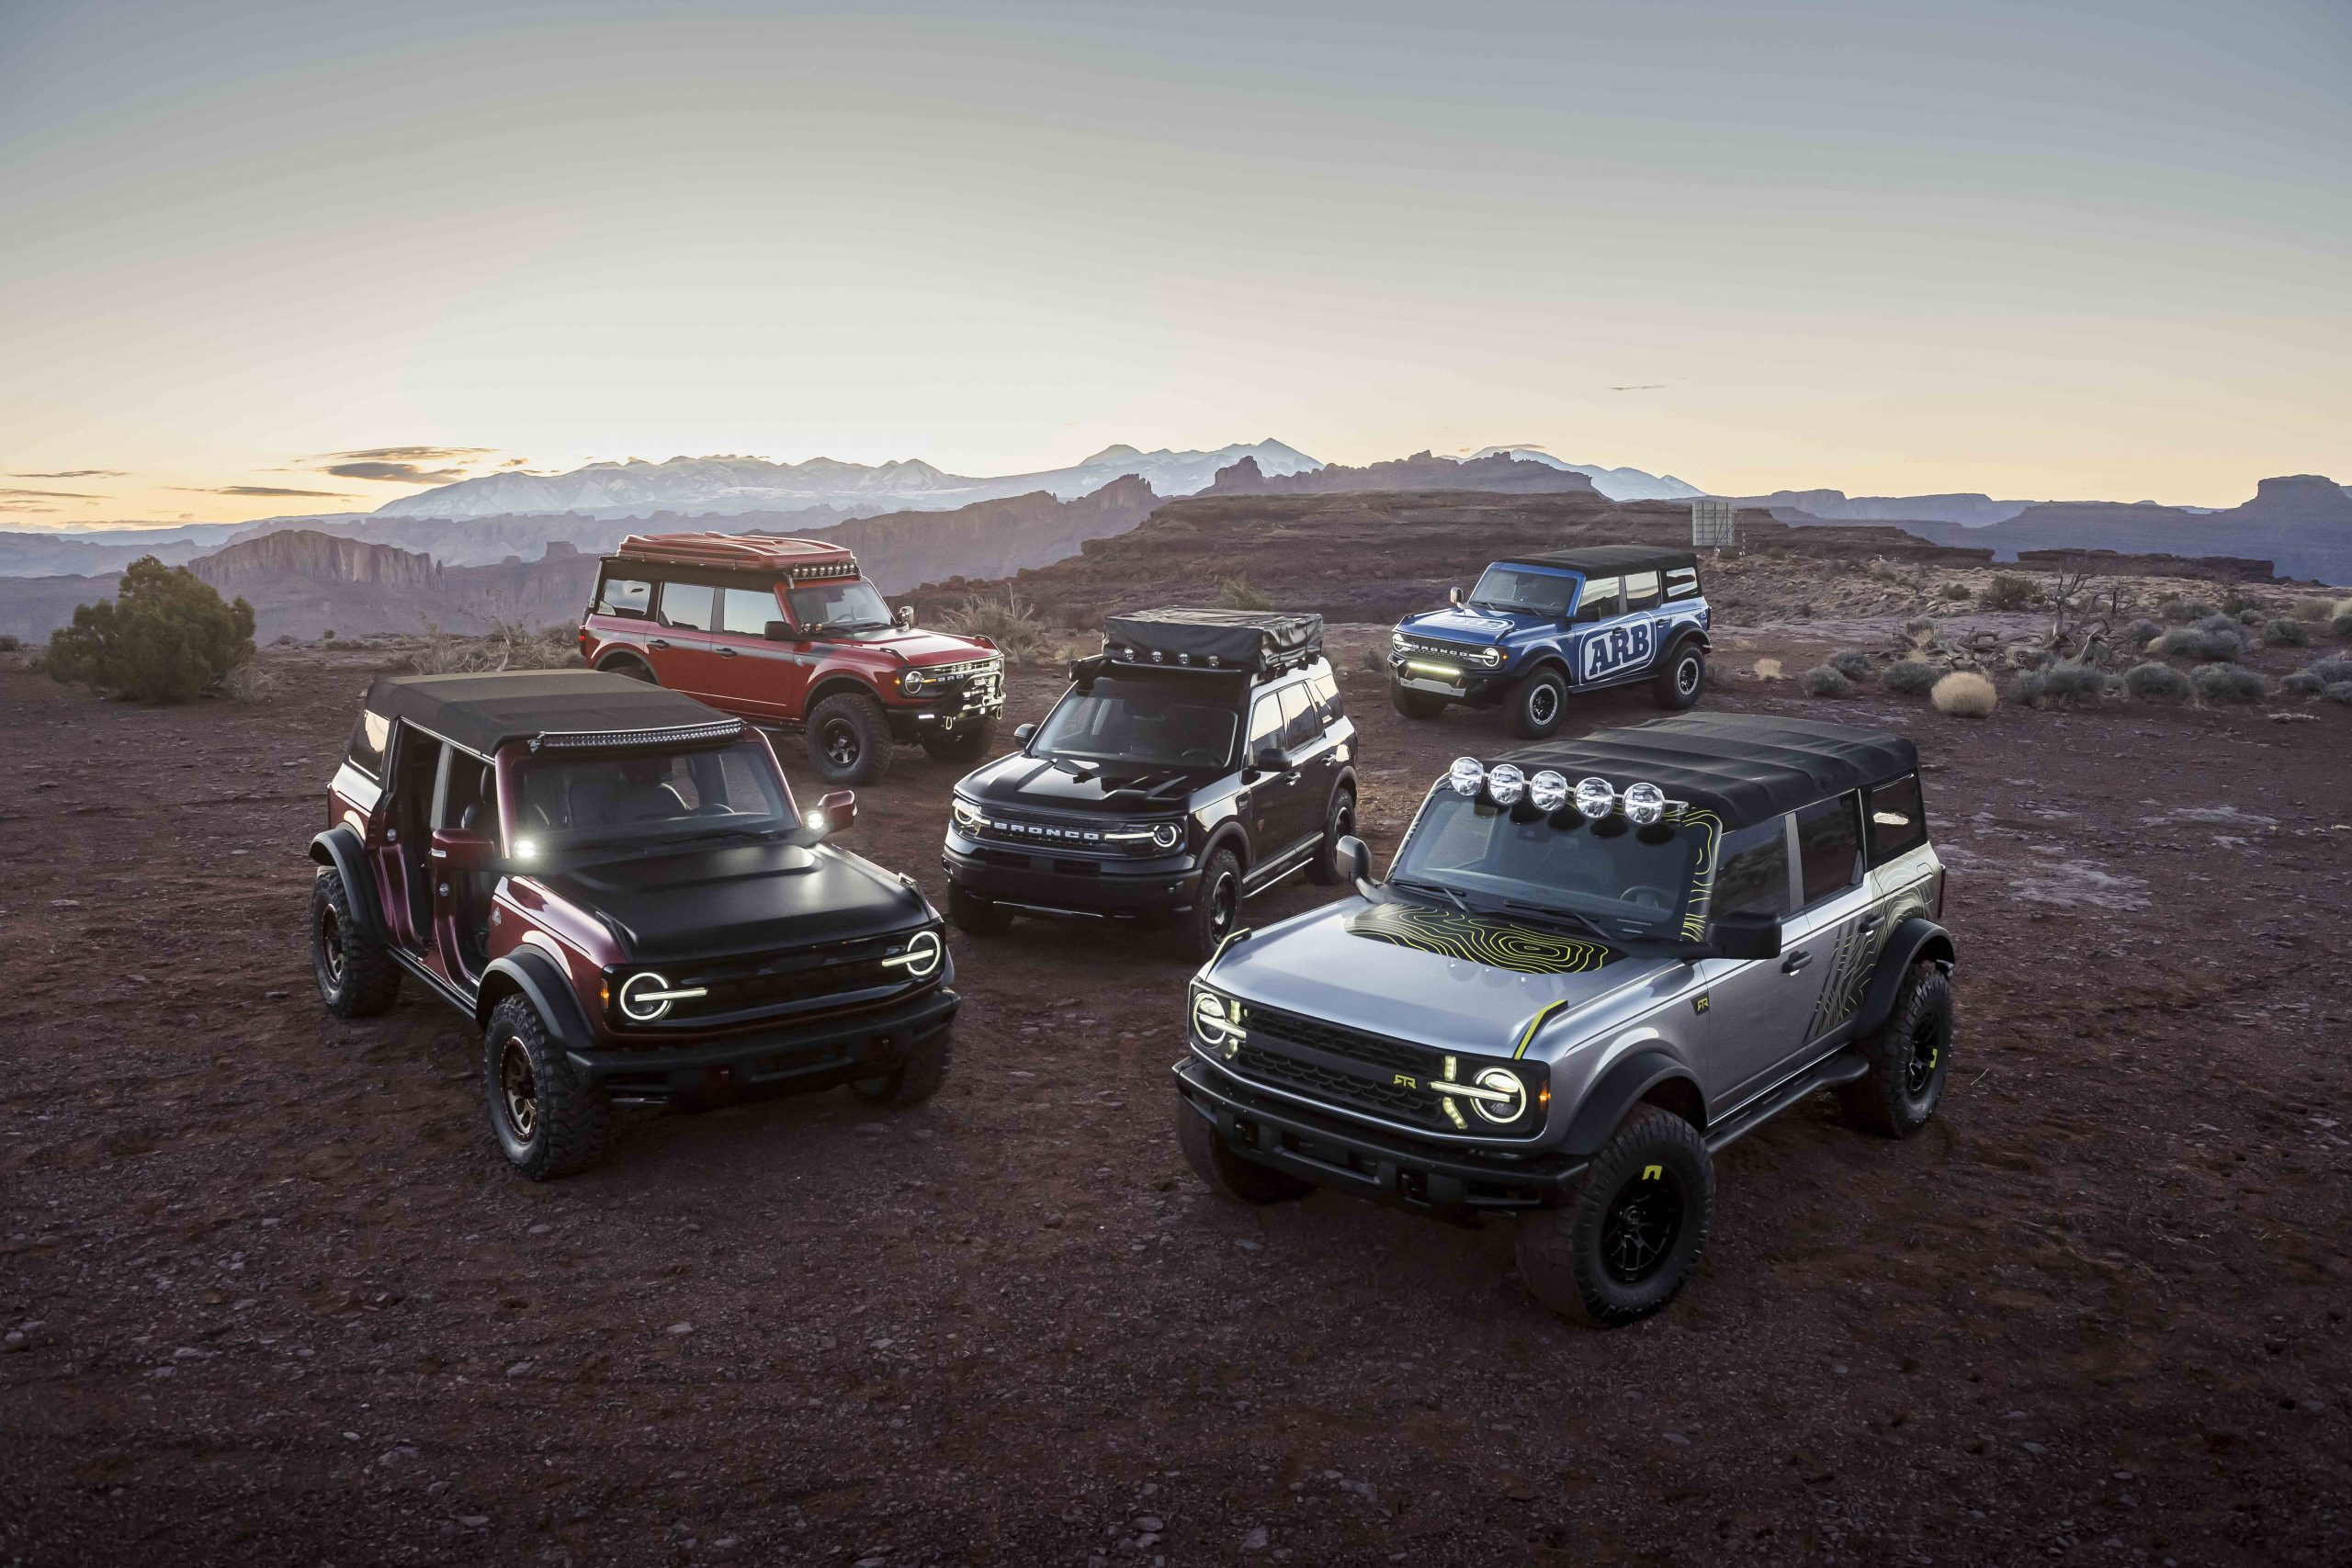 BRONCO BRAND TEAMS UP WITH RESPECTED 4X4 COMPANIES TO EXPAND AFTERMARKET PARTS AND ACCESSORY OPTIONS FOR CUSTOMERS